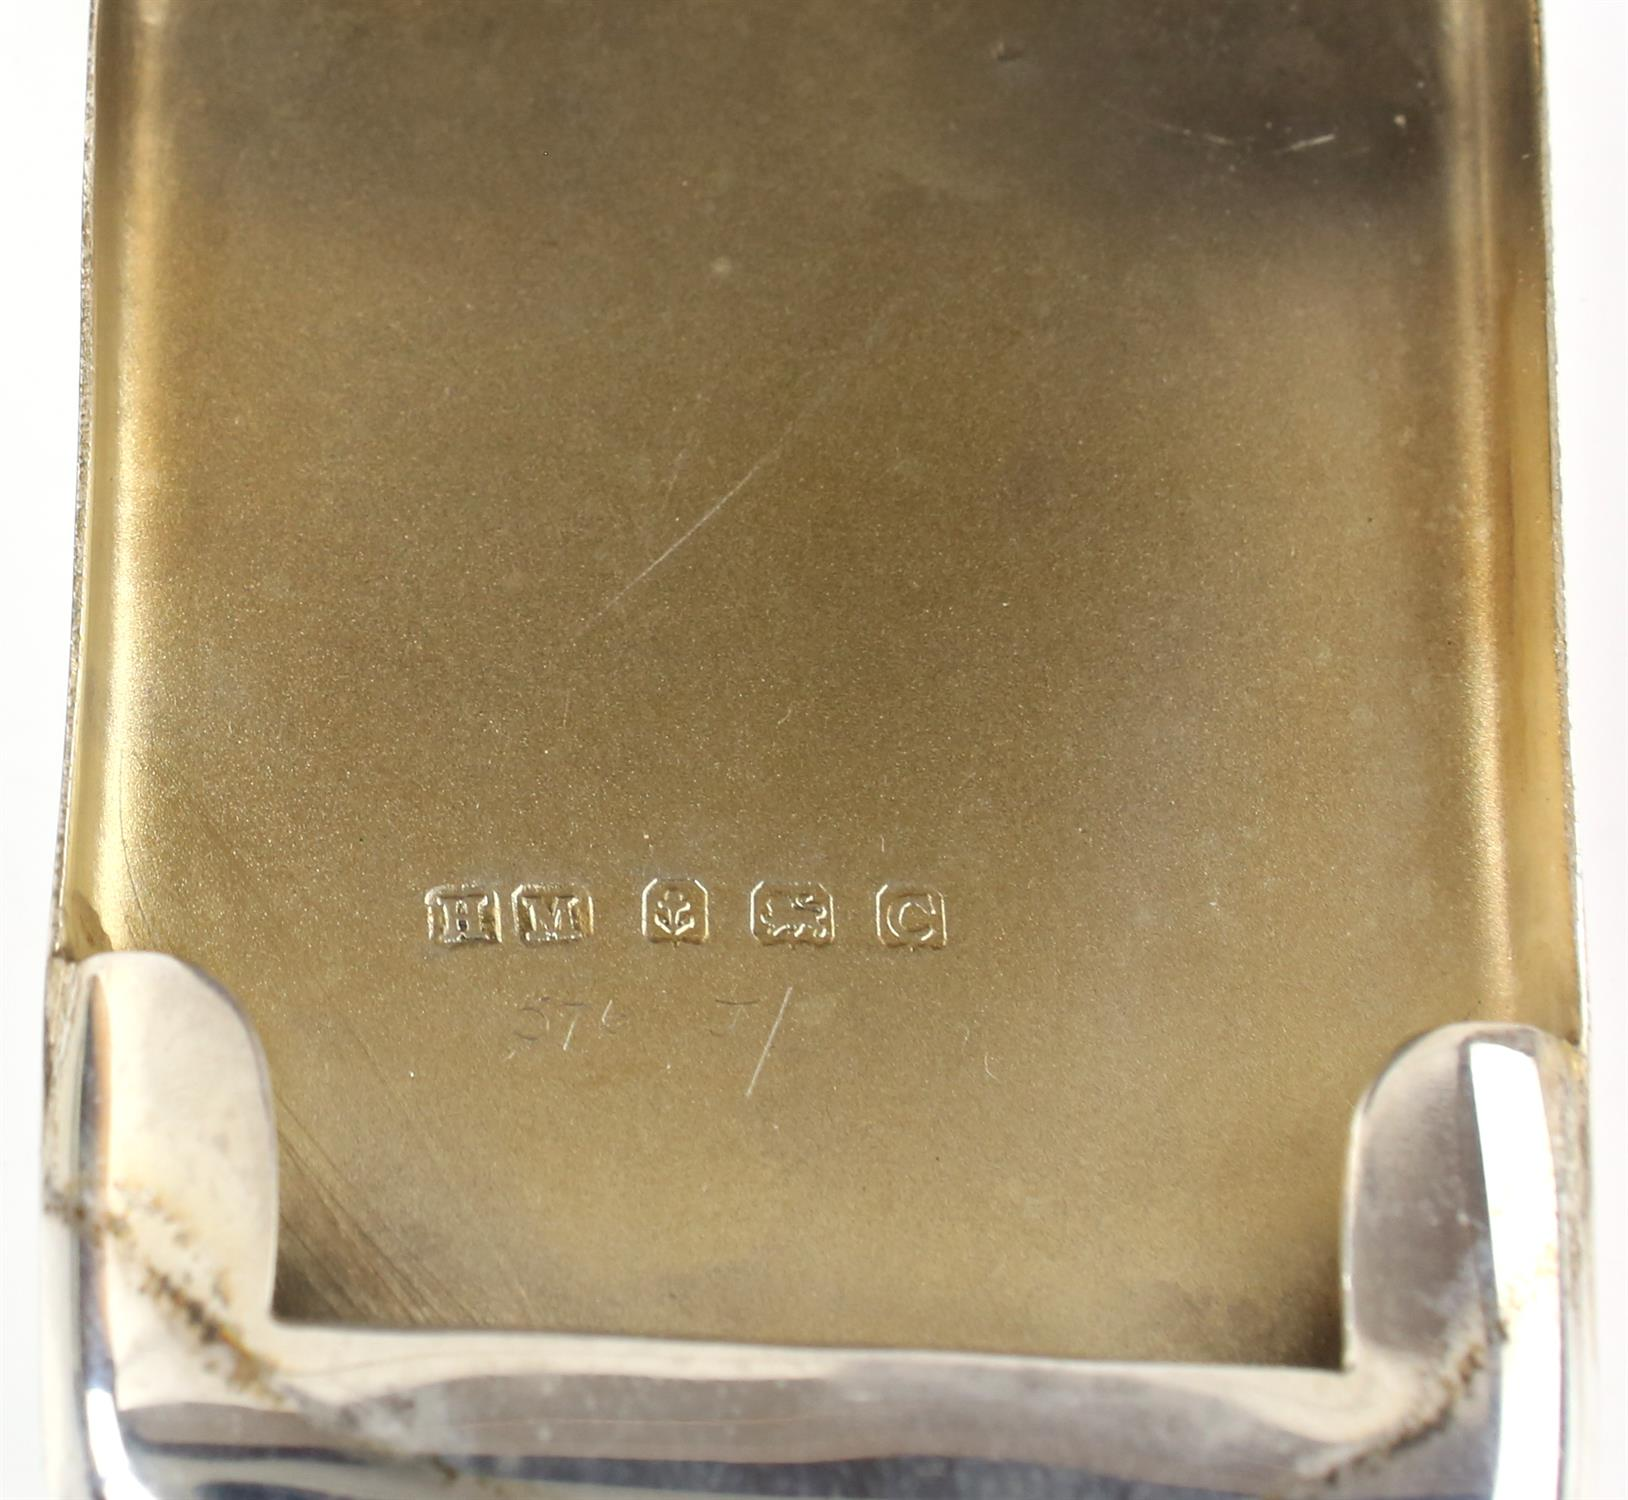 Silver advertising match book holder for Johnny Walker whisky by Henry Matthews, Birmingham 1927 - Image 5 of 5